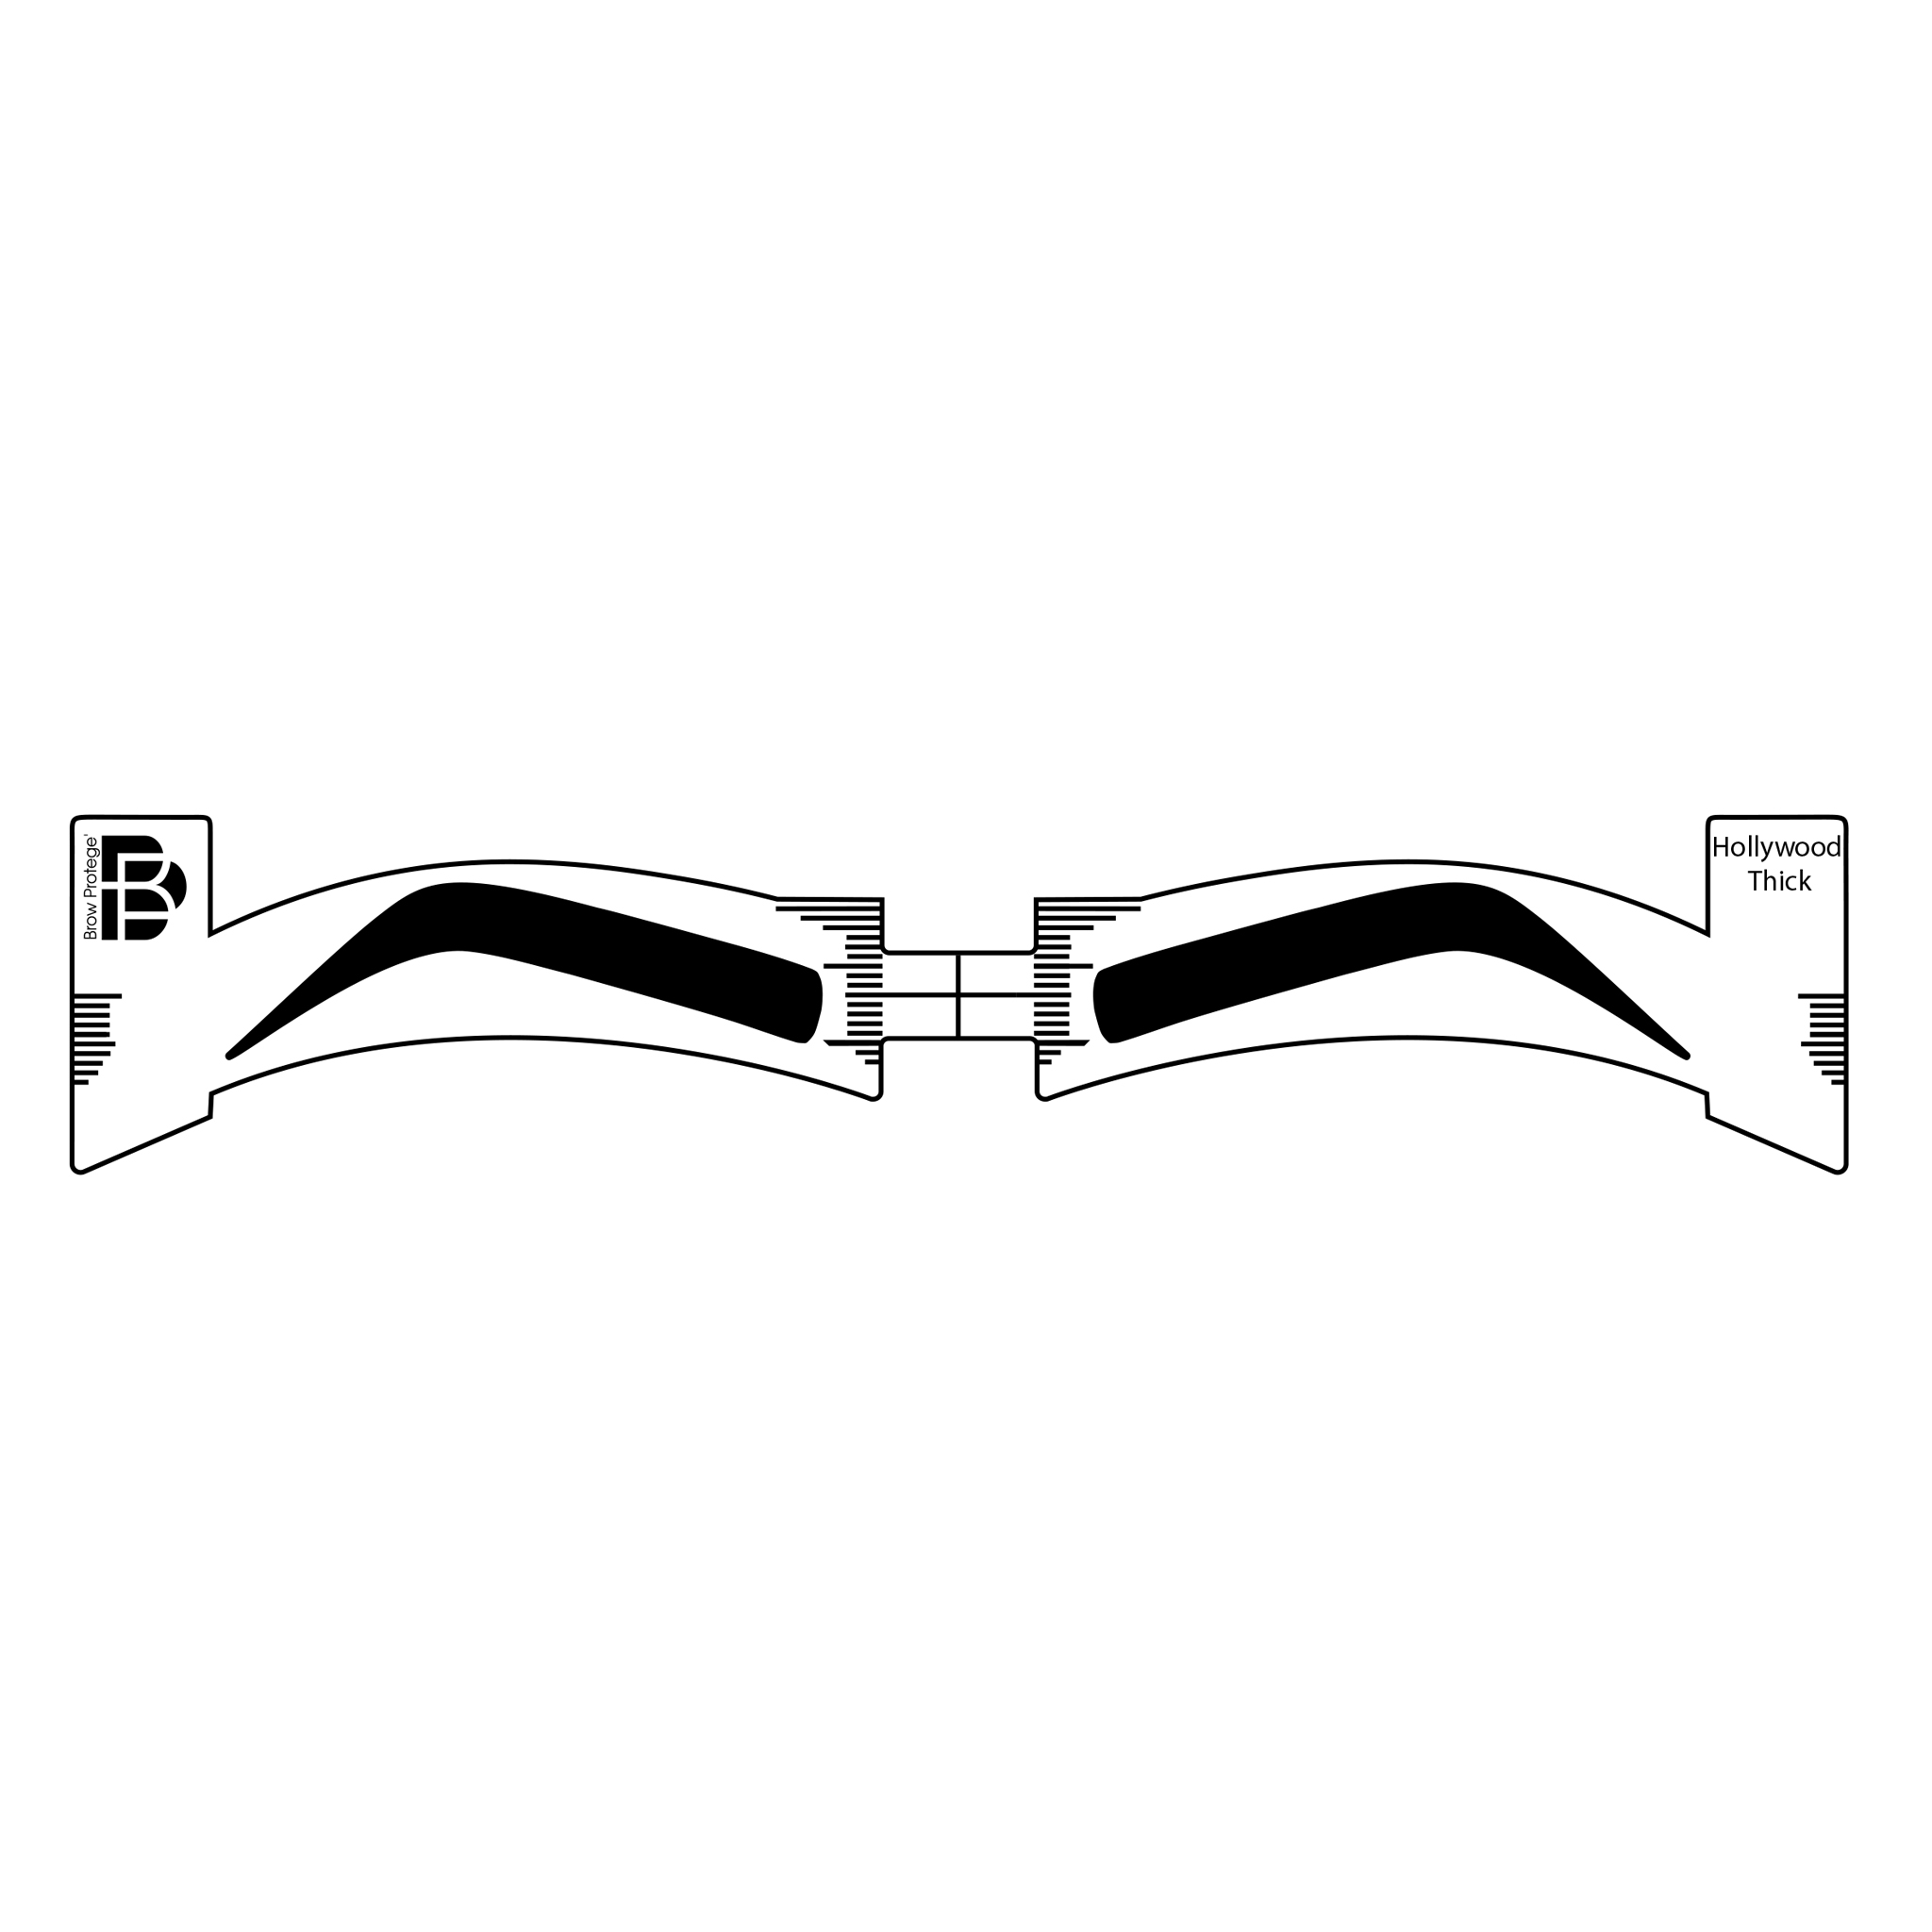 Brow Protege Eyebrow Stencils For The Professional Faux Features